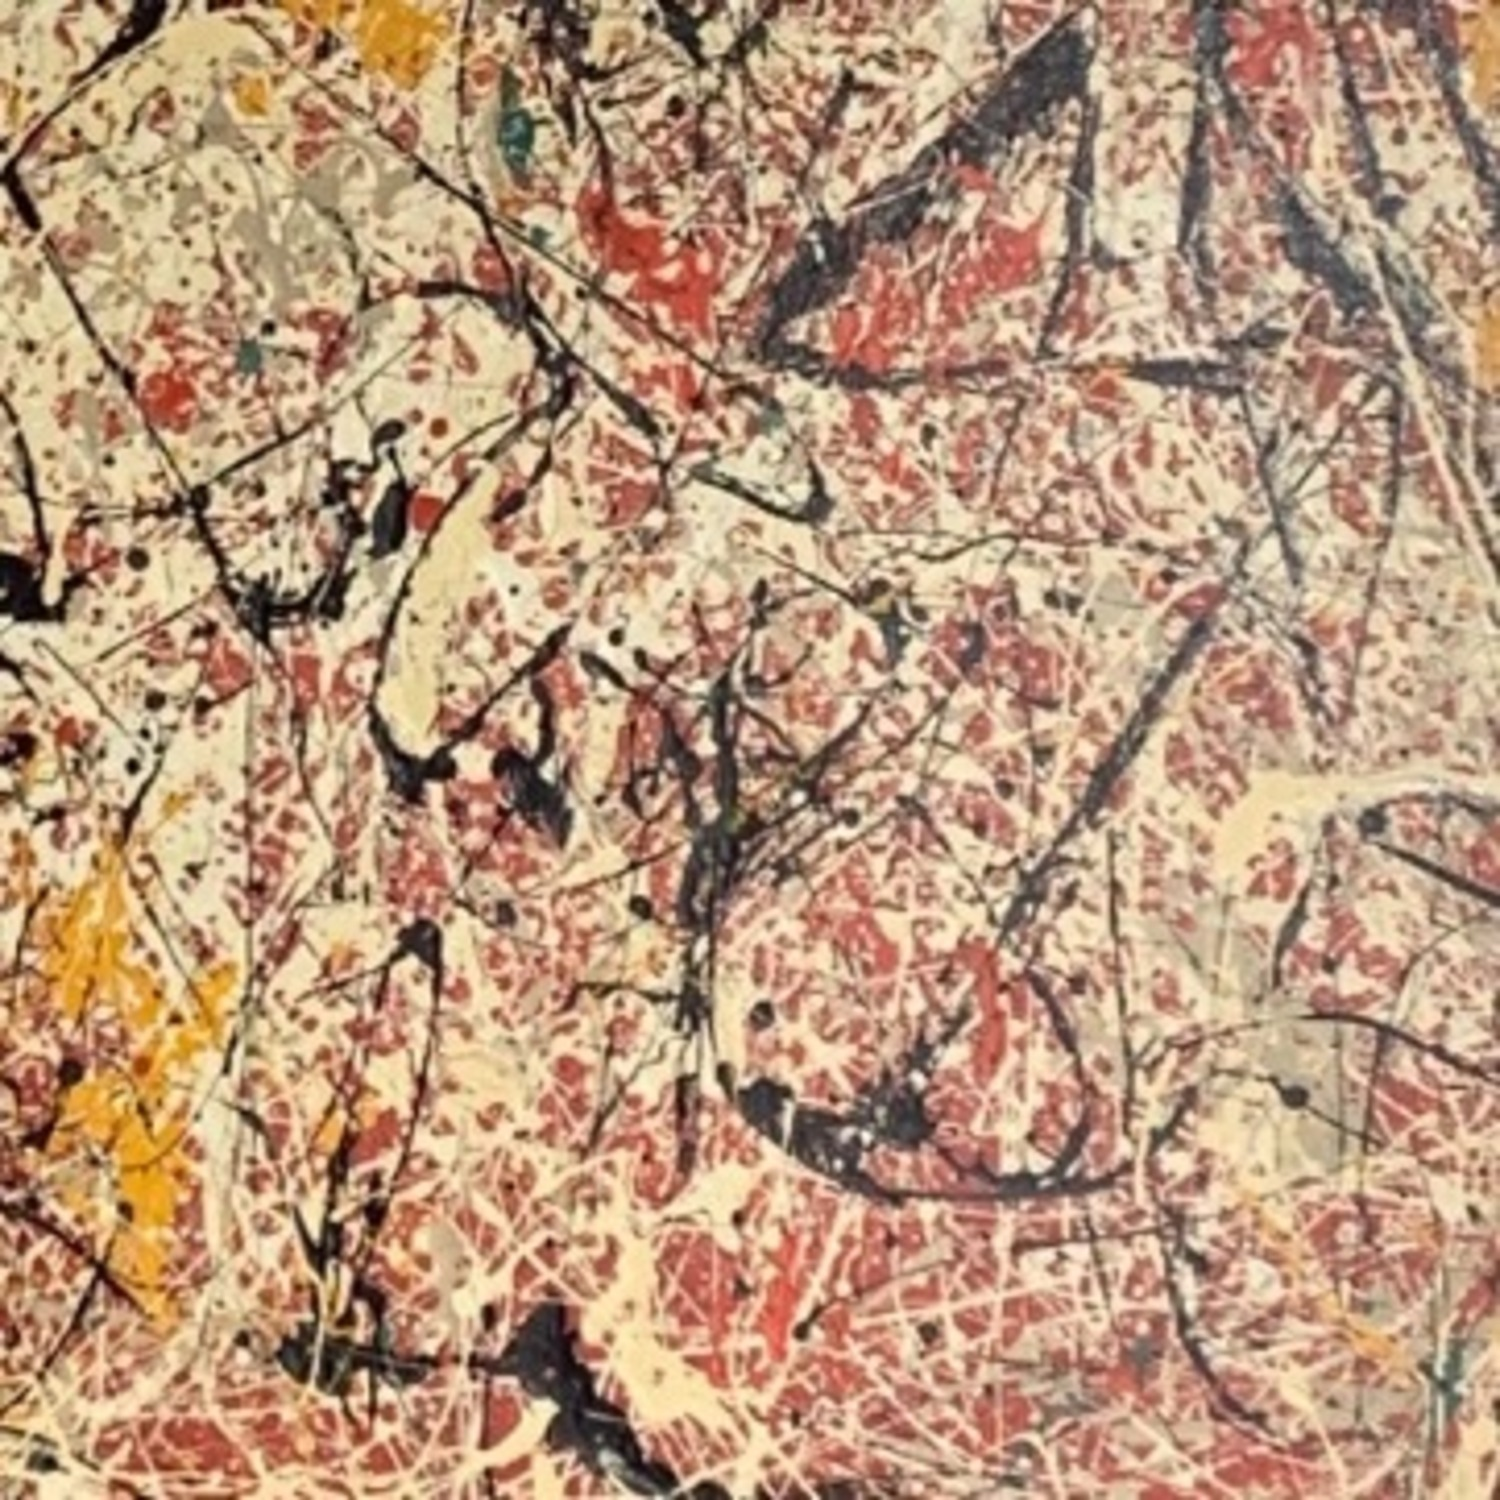 XL Painting- Jackson Pollock Reproduction - image-2